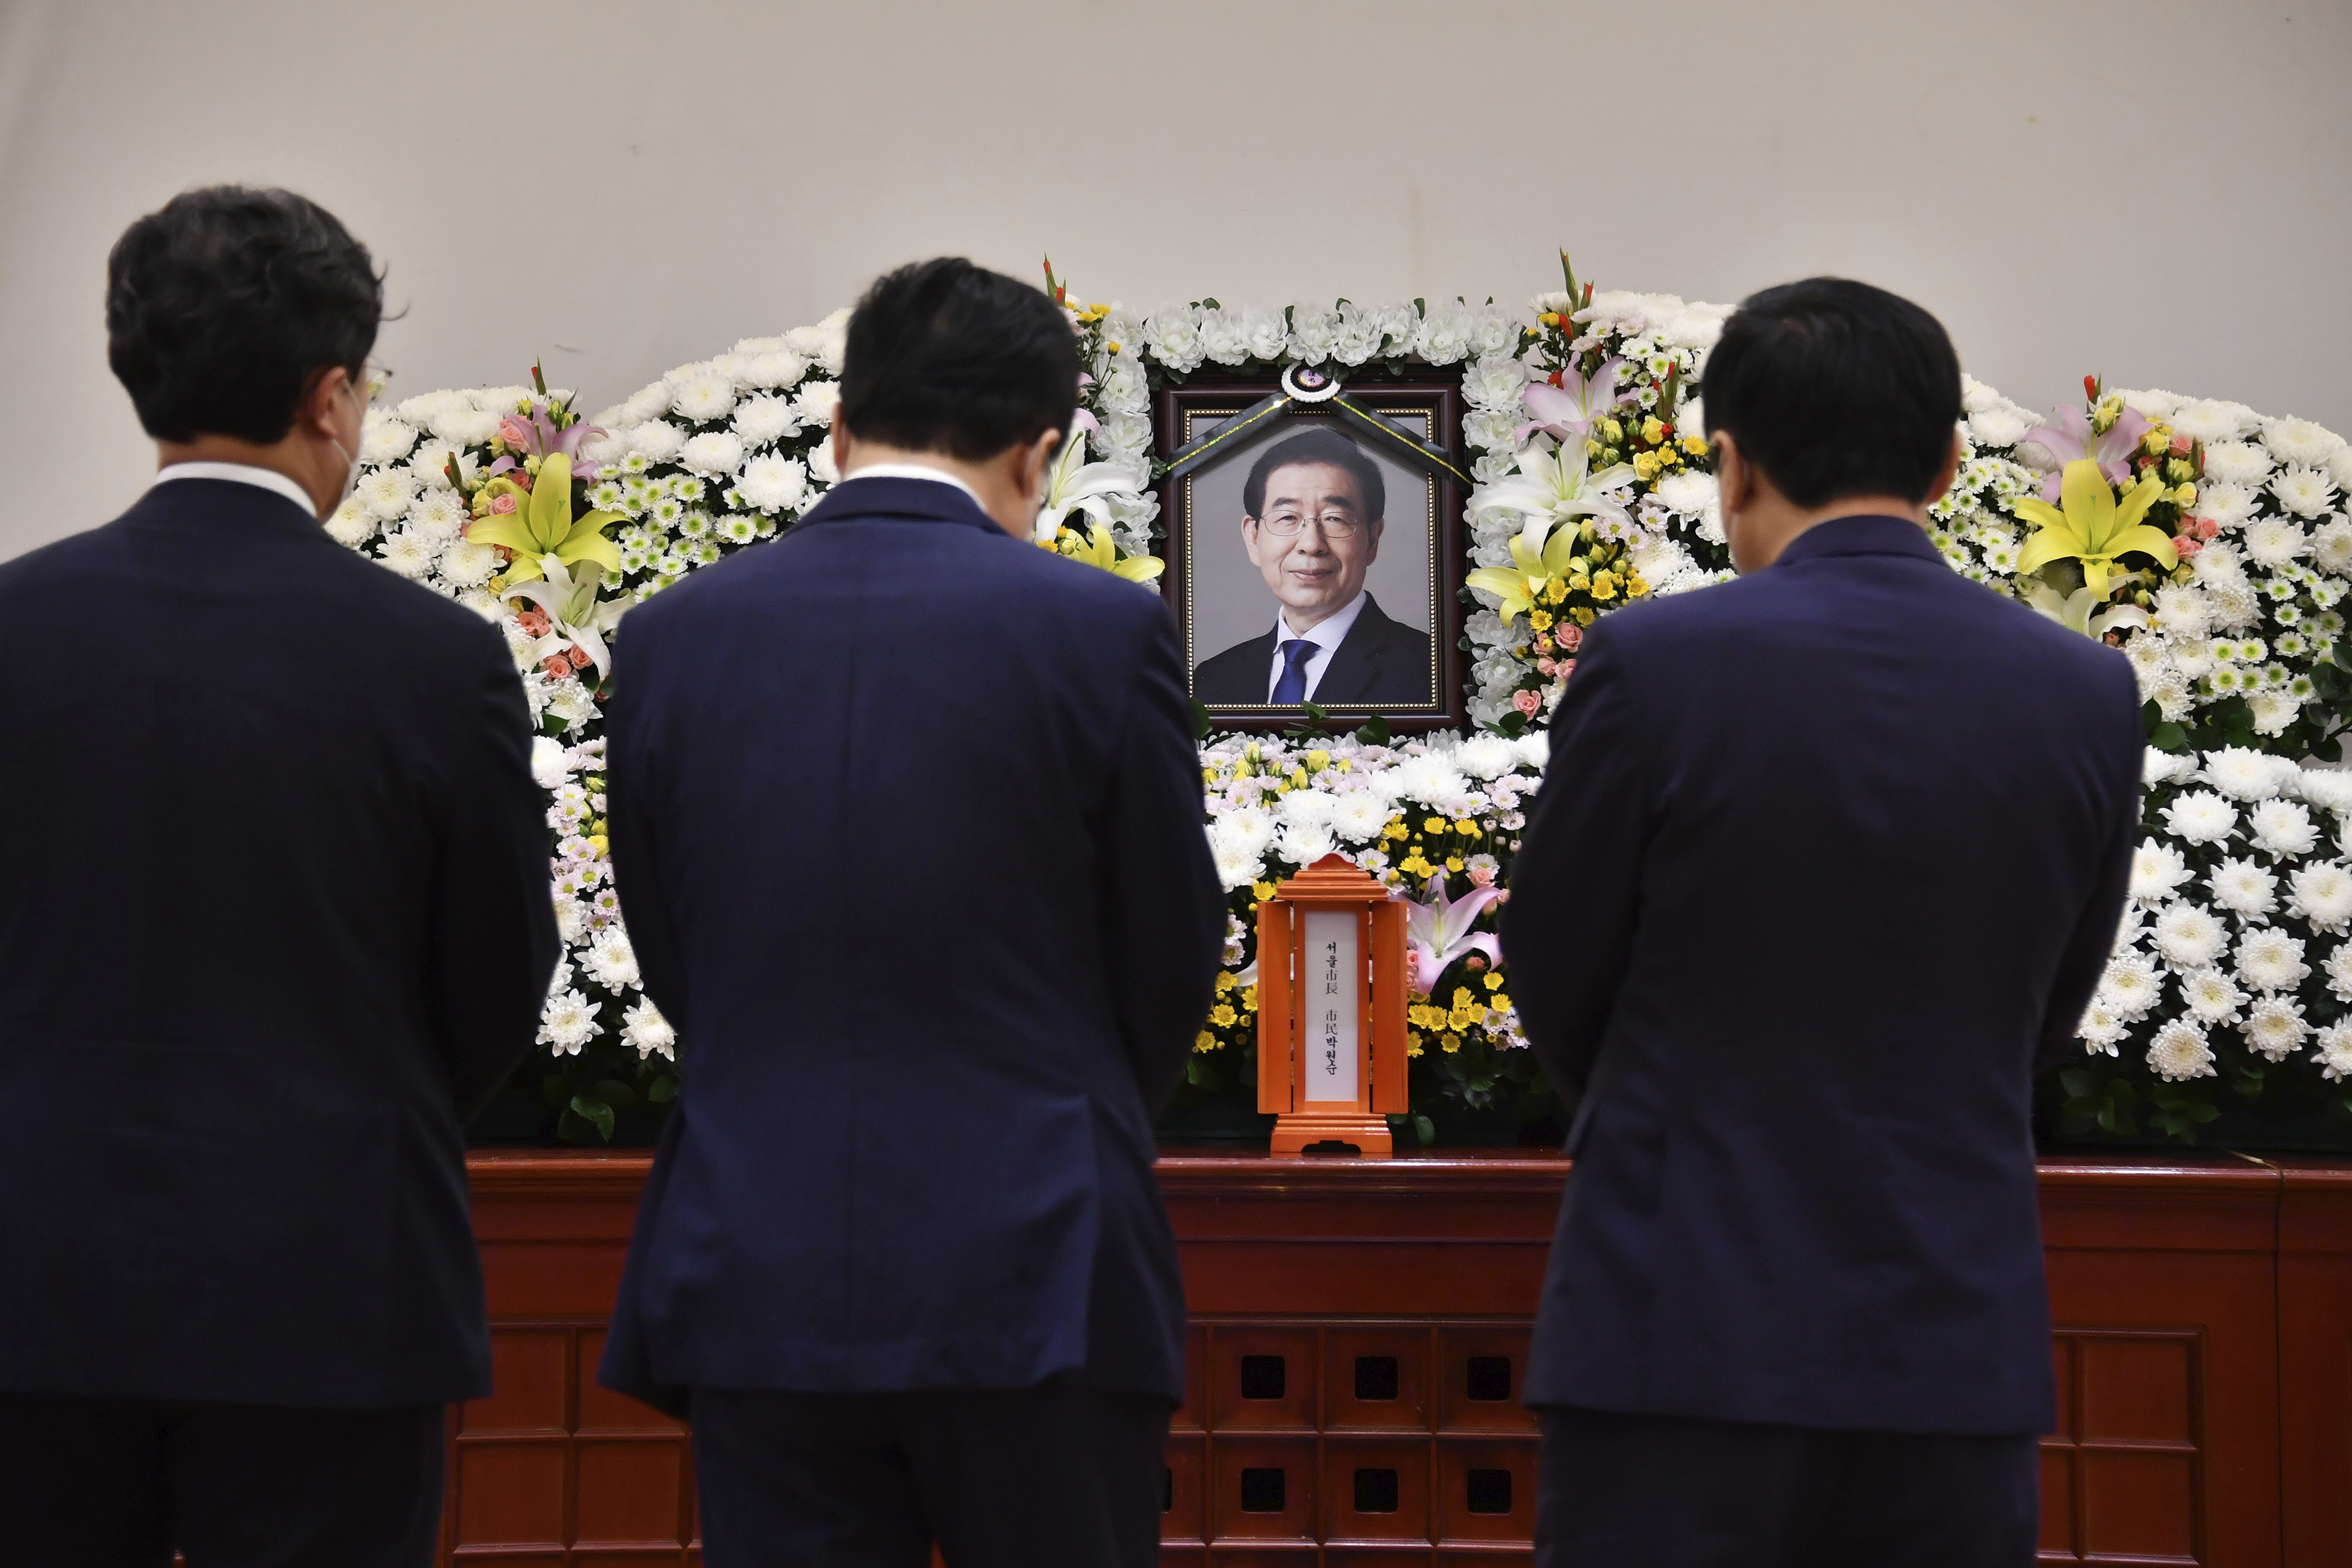 Seoul Mayor S Death Prompts Sympathy Questions Of His